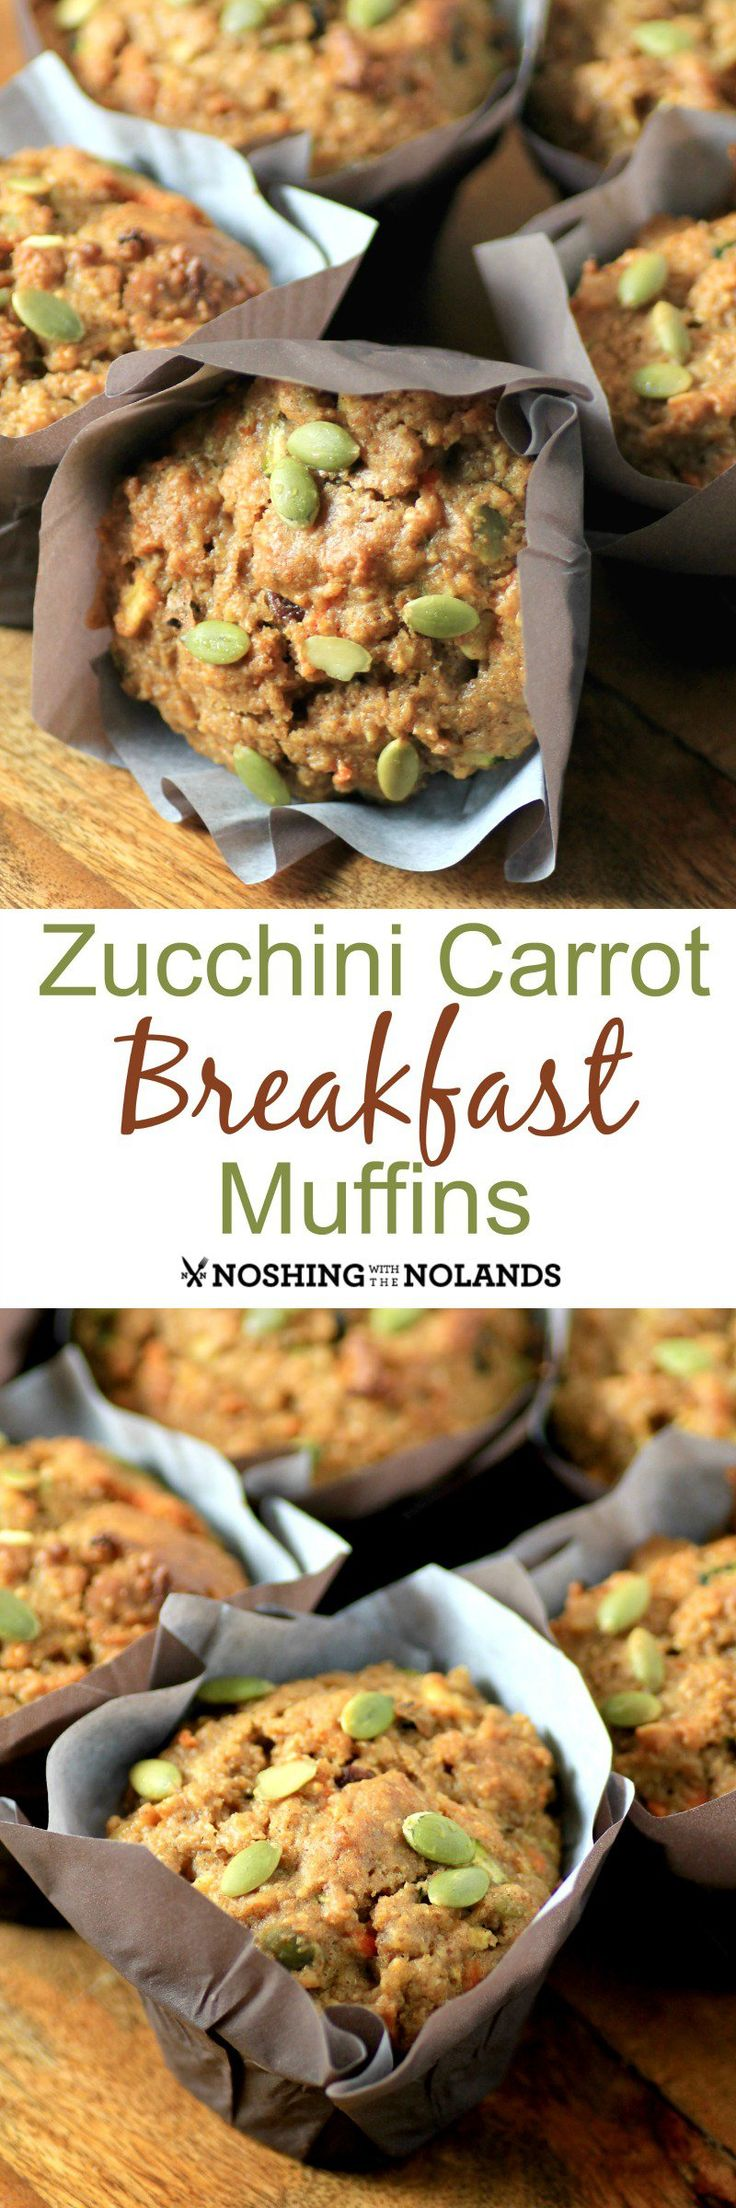 Zucchini Carrot Breakfast Muffins from Noshing With The Nolands are loaded with healthy ingredients to give you a boost! These muffins are a must make from the Homegrown cookbook I have reviewed on my site!